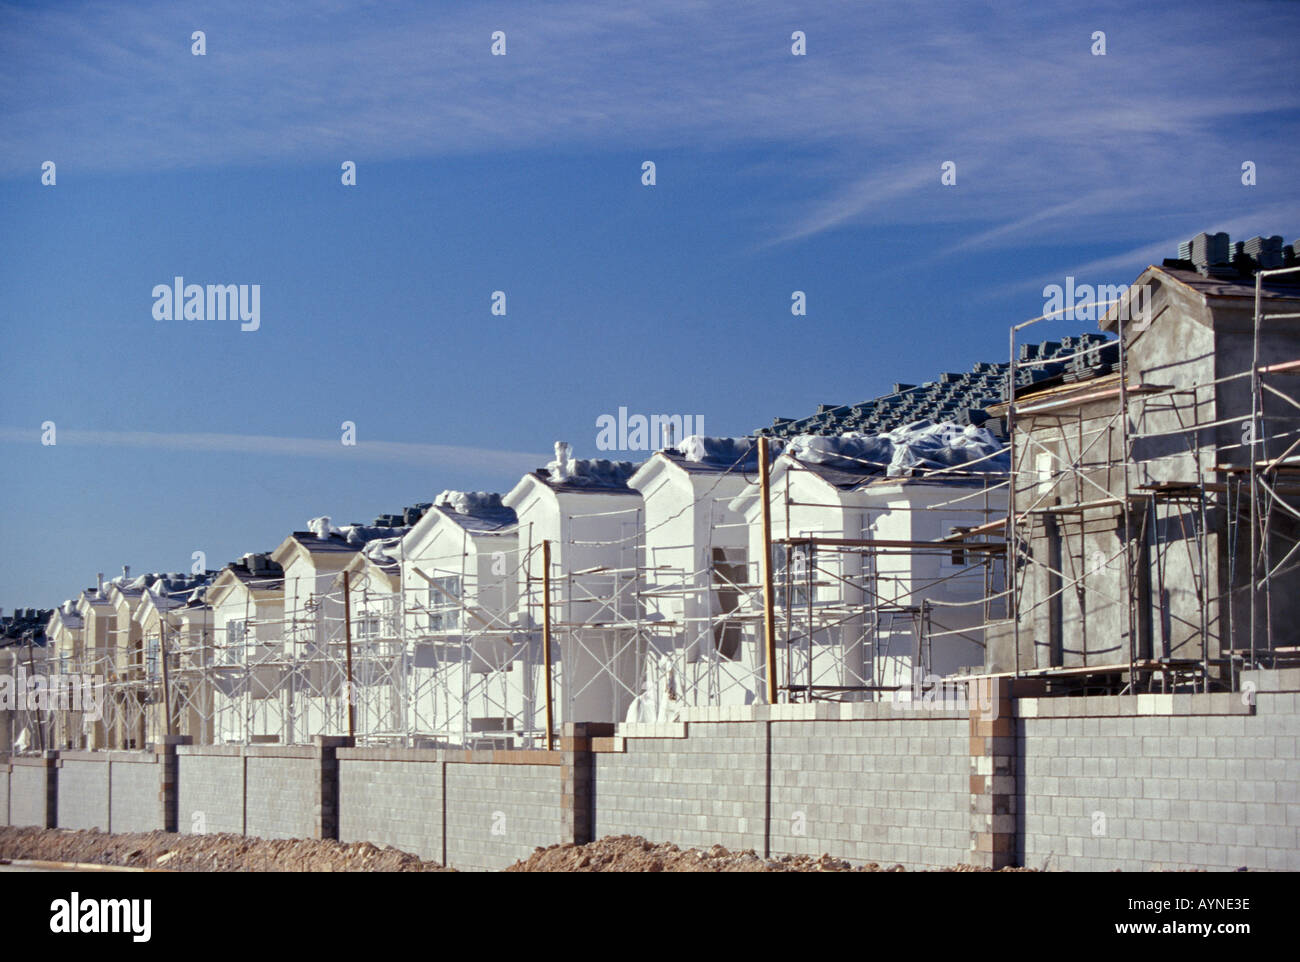 Housing construction of an entirely new neighborhood in Las Vegas Nevada - Stock Image